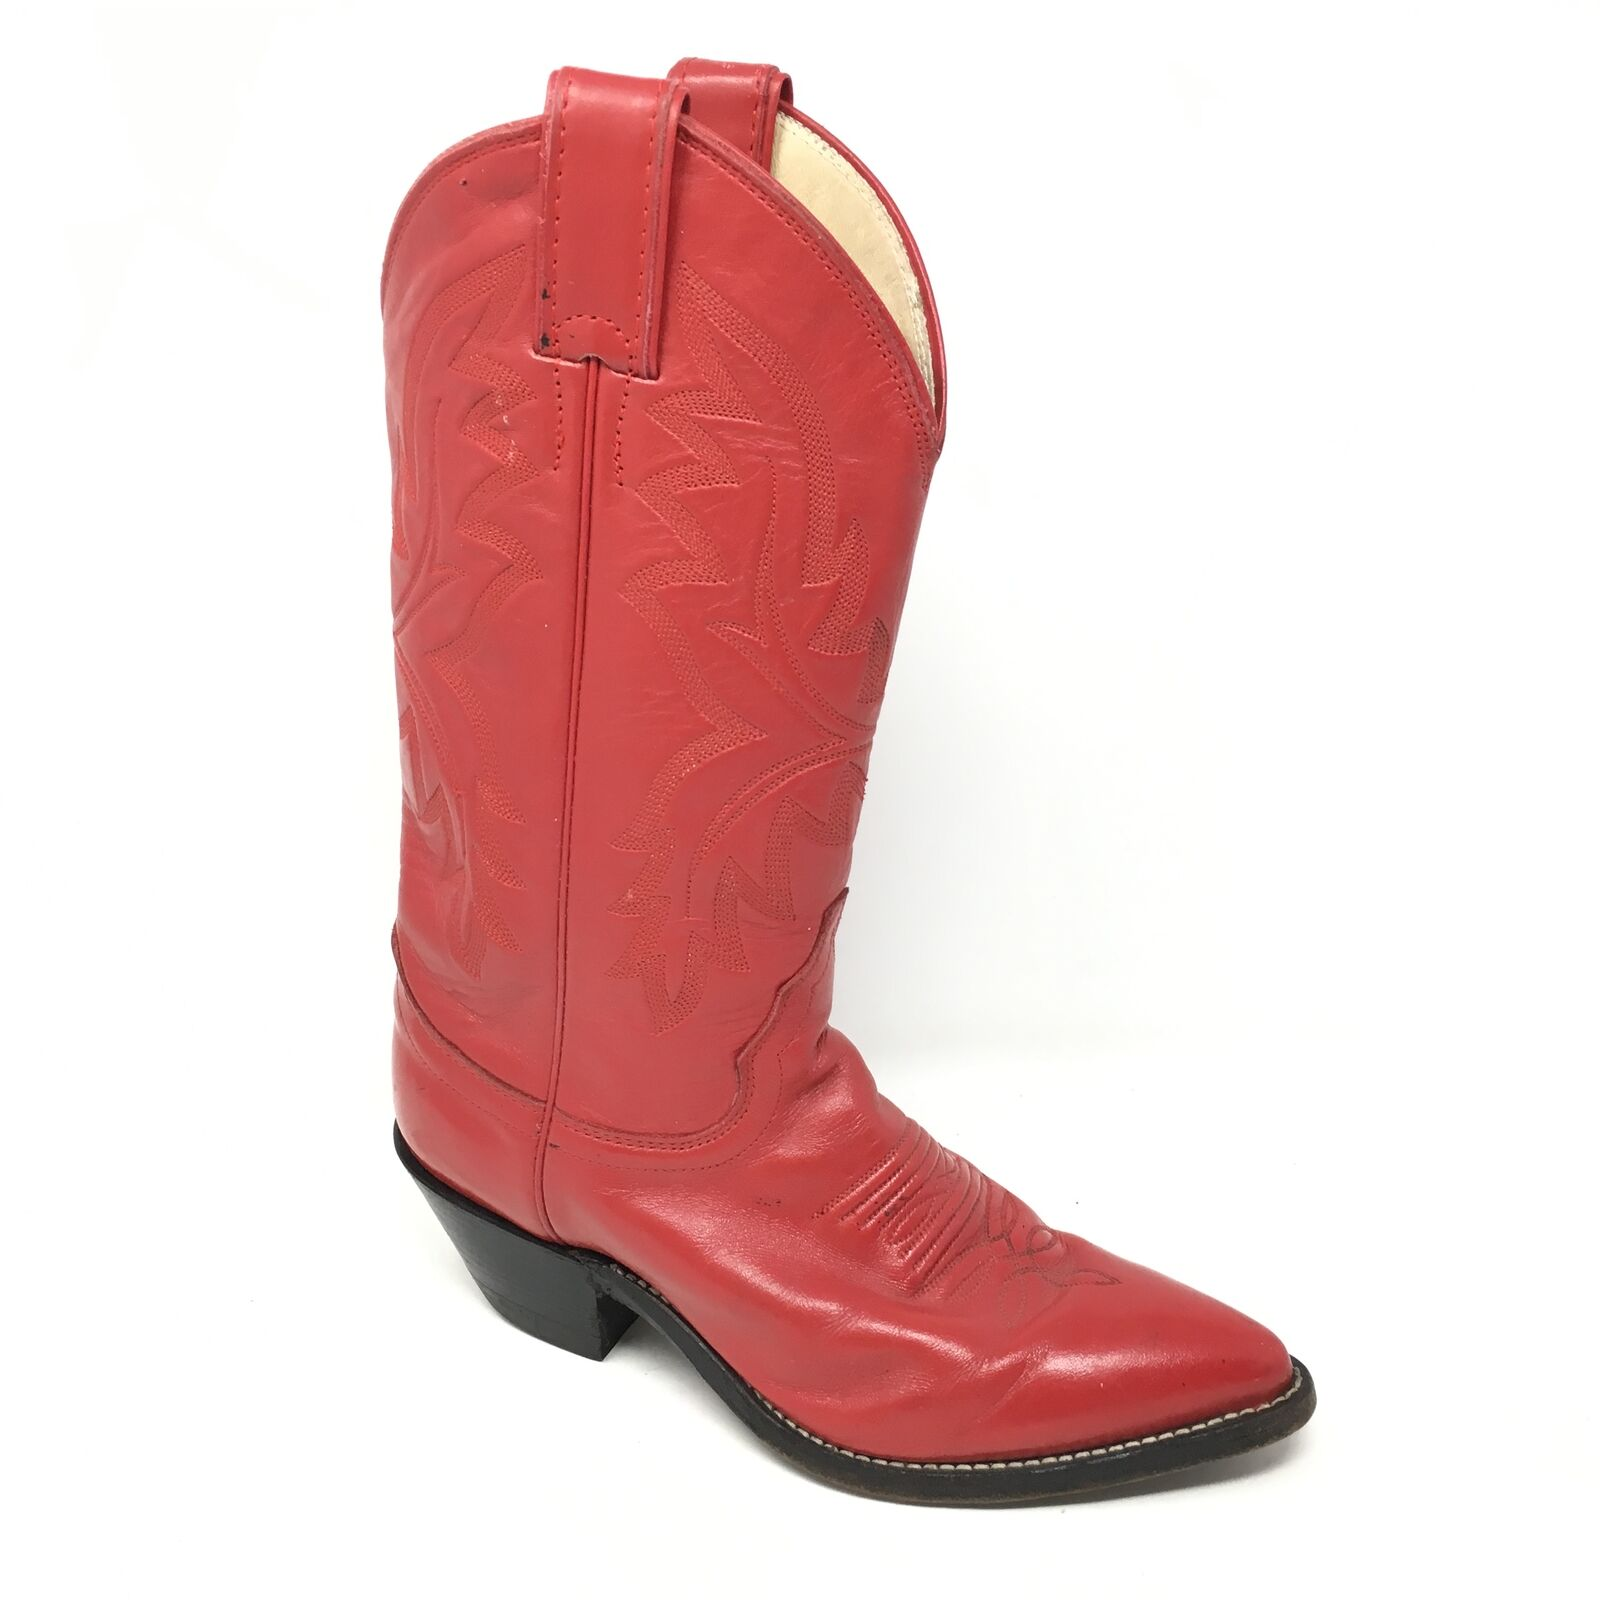 Women's Justin L4905 Western Boots shoes Size 5.5C Wide Red Leather Cowboy V3